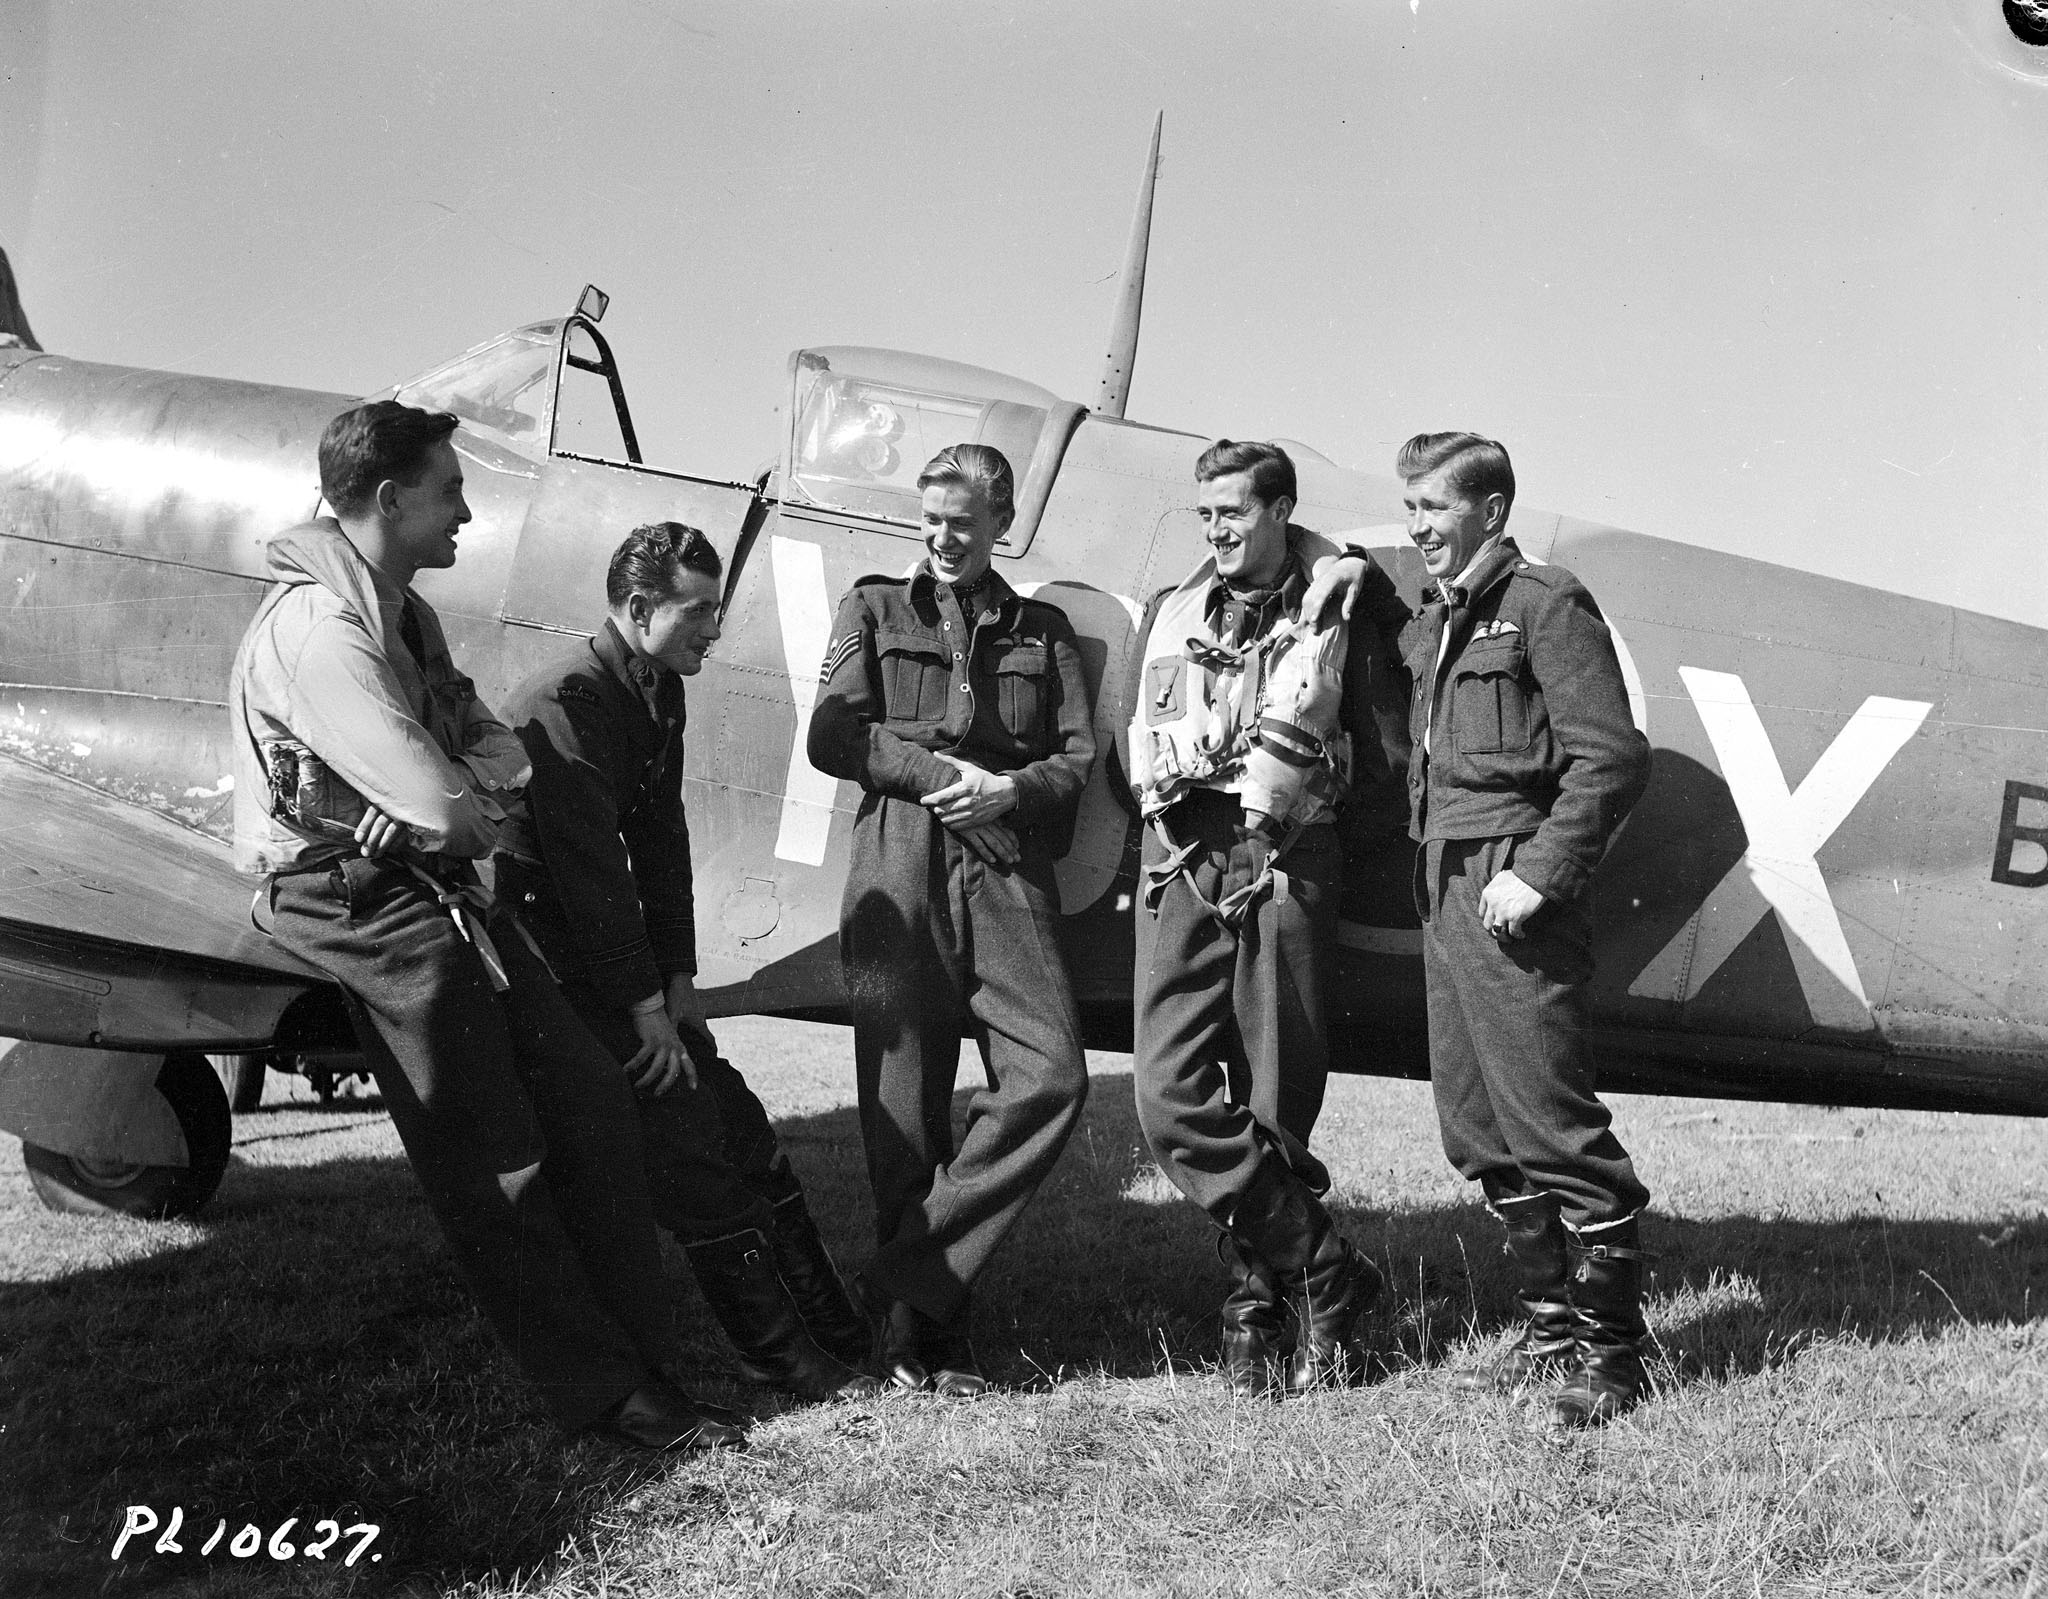 "Spitfire pilots from 401 Squadron, RCAF, wait for their aircraft to be refuelled between flights on August 19, 1942, during Operation Jubilee. From left to right: Flight Sergeant Ed Gimbel of Chicago, Illinois, Flight Lieutenant Jim Whitham of Edmonton, Alberta, Flight Sergeant Bob Reesor of Peace River, Alberta, and Pilot Officer ""Scotty"" Murray of Halifax, Nova Scotia. PHOTO: DND Archives, PL-10627"